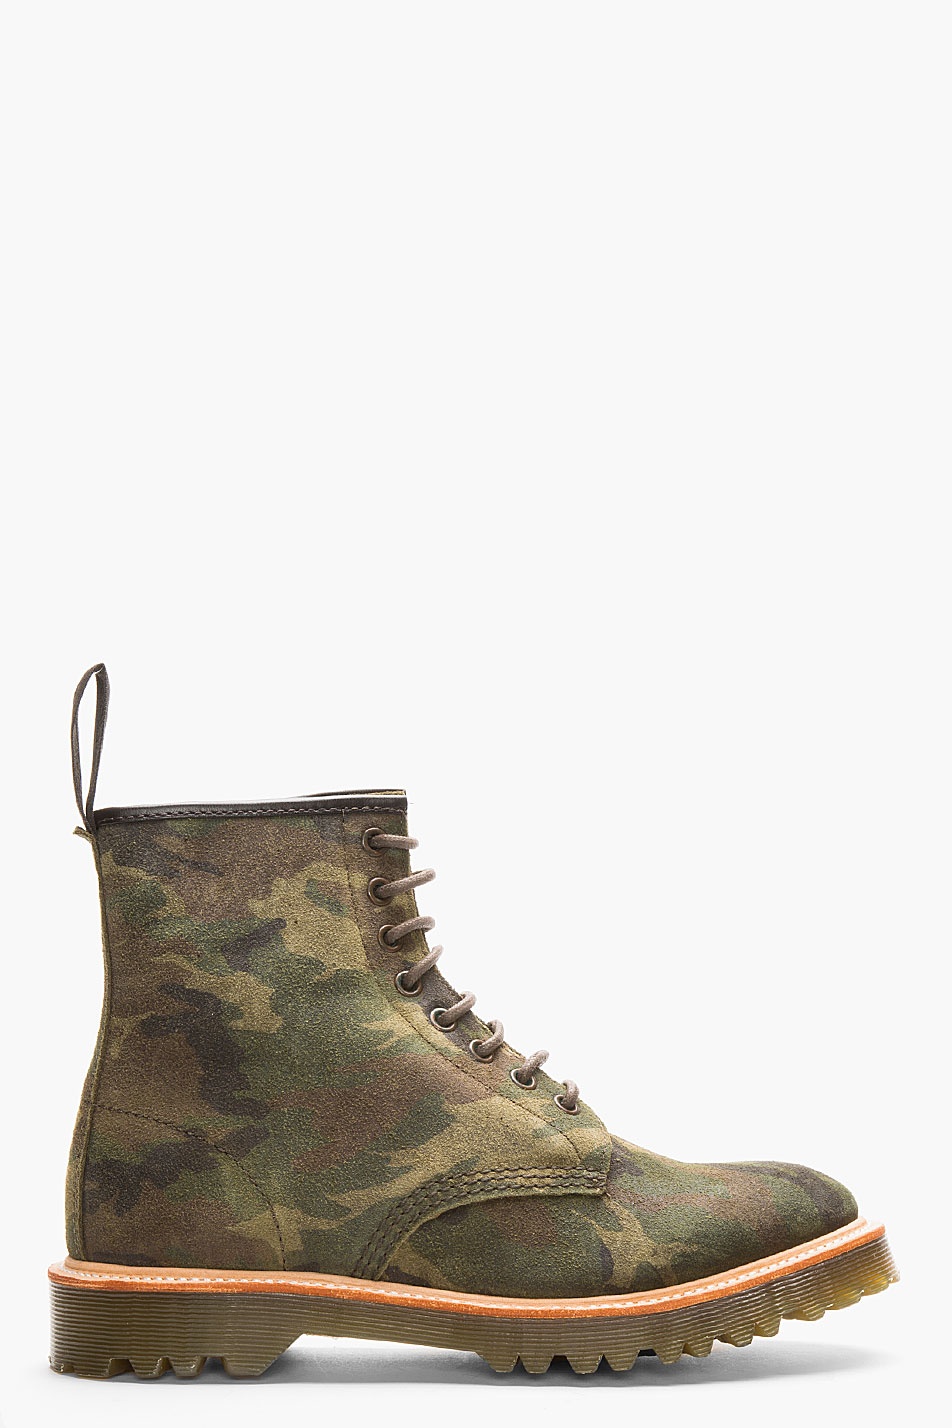 Green Camo 1460 8-eye boot Dr. Martens Rugged suede men style 4